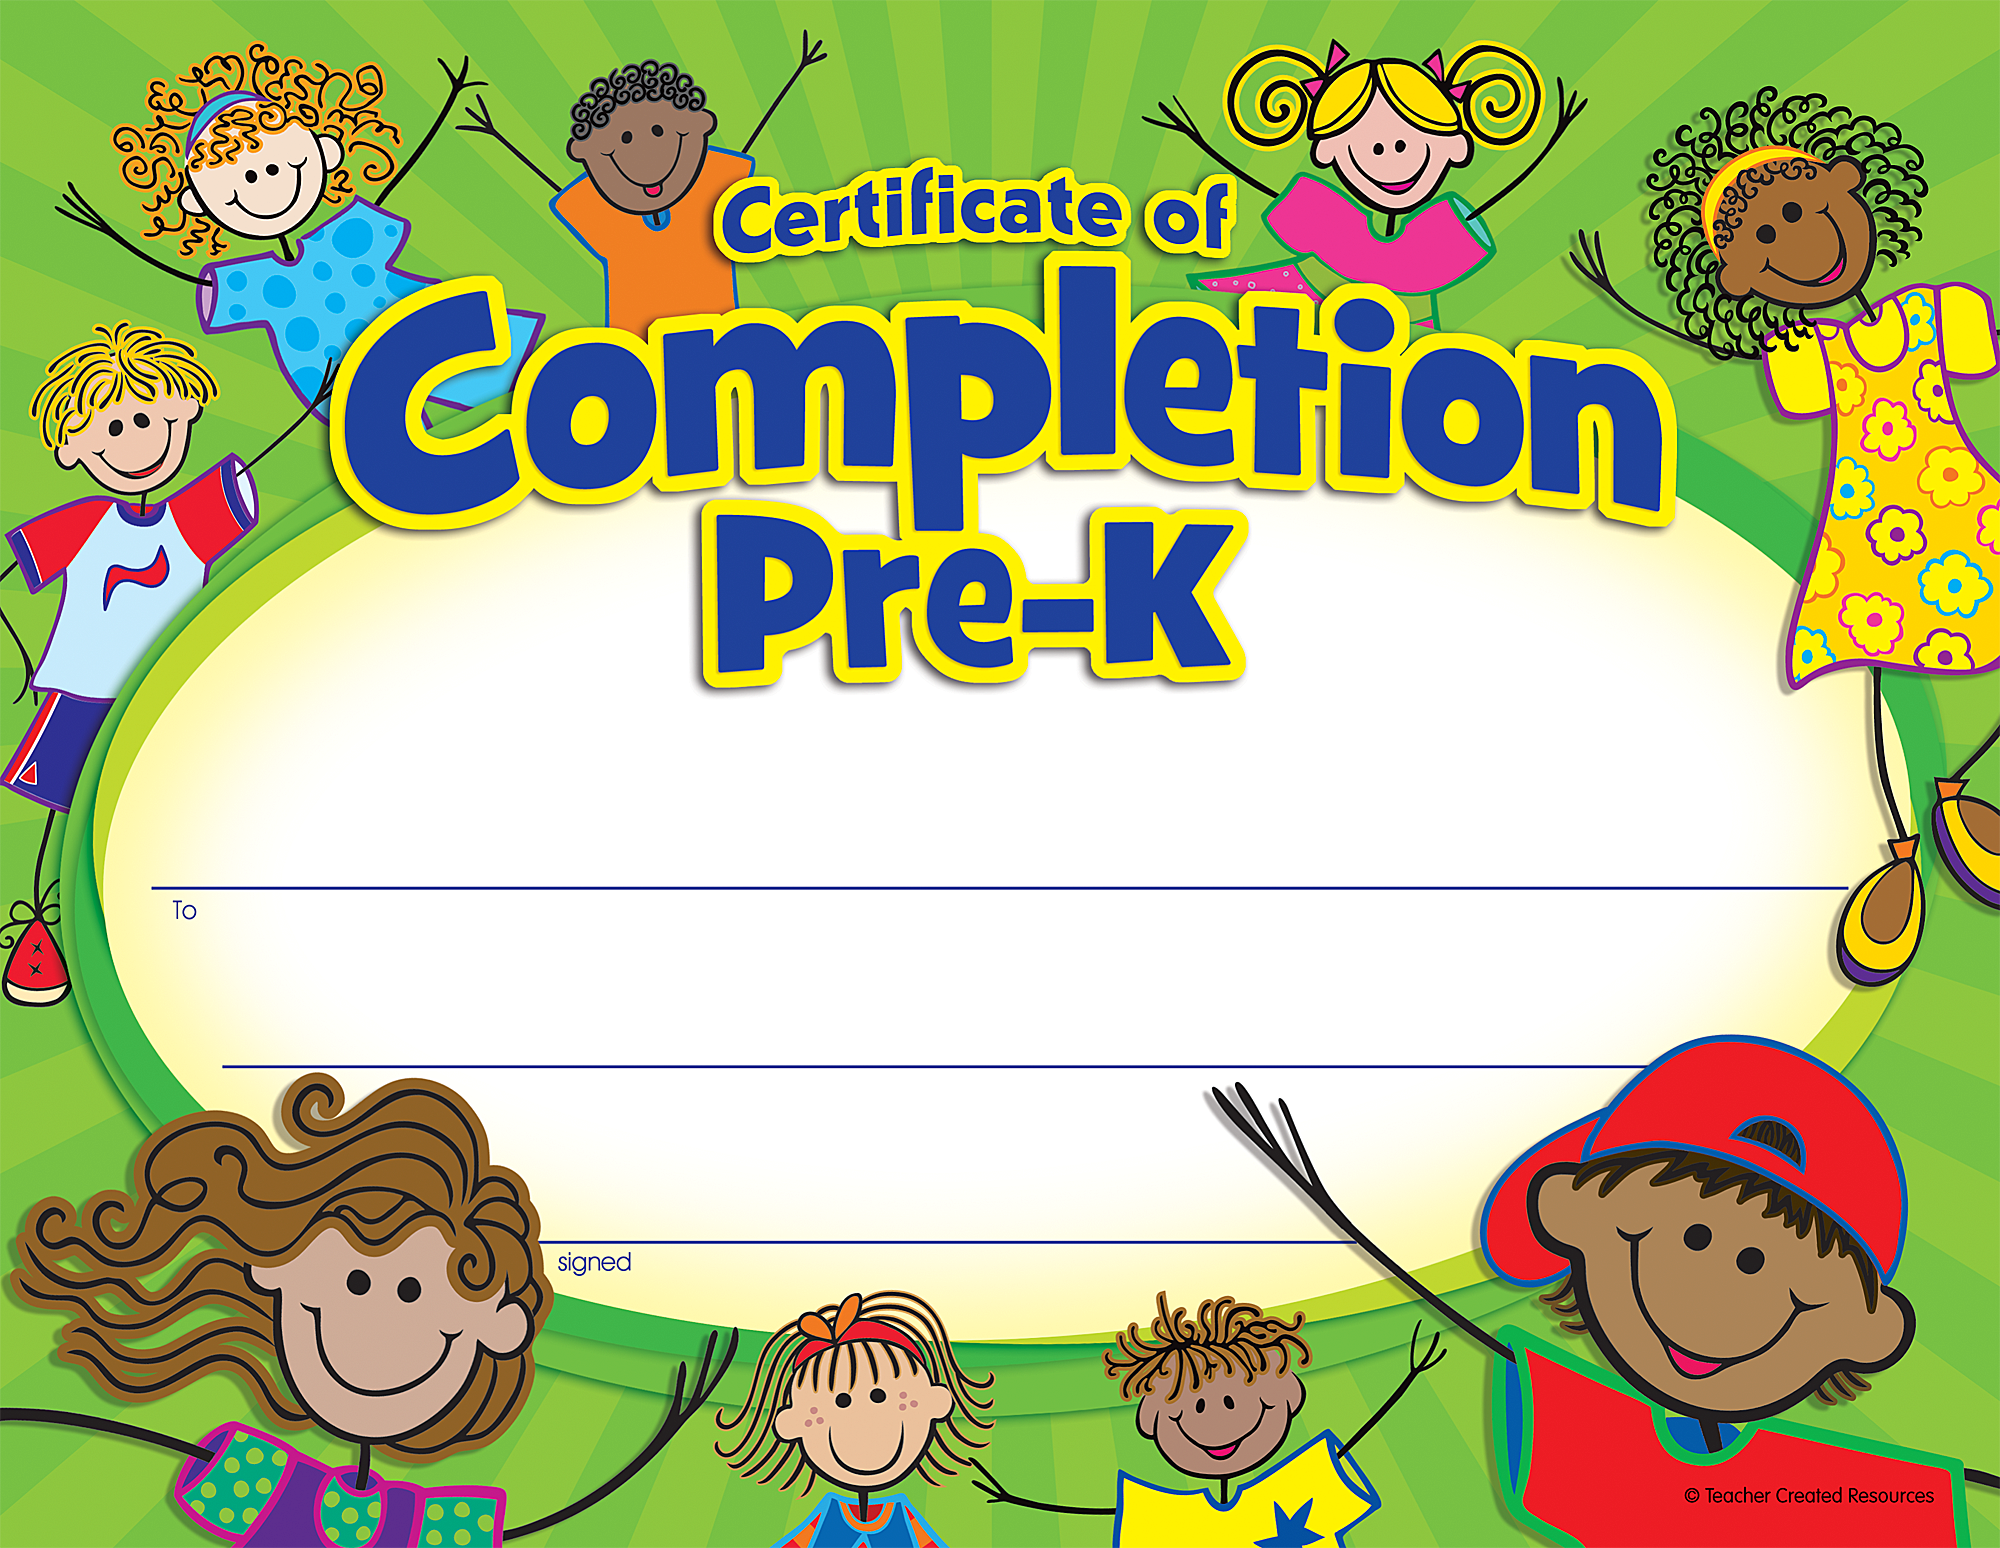 Pre-K Certificate of Completion - TCR4588 | Teacher Created Resources